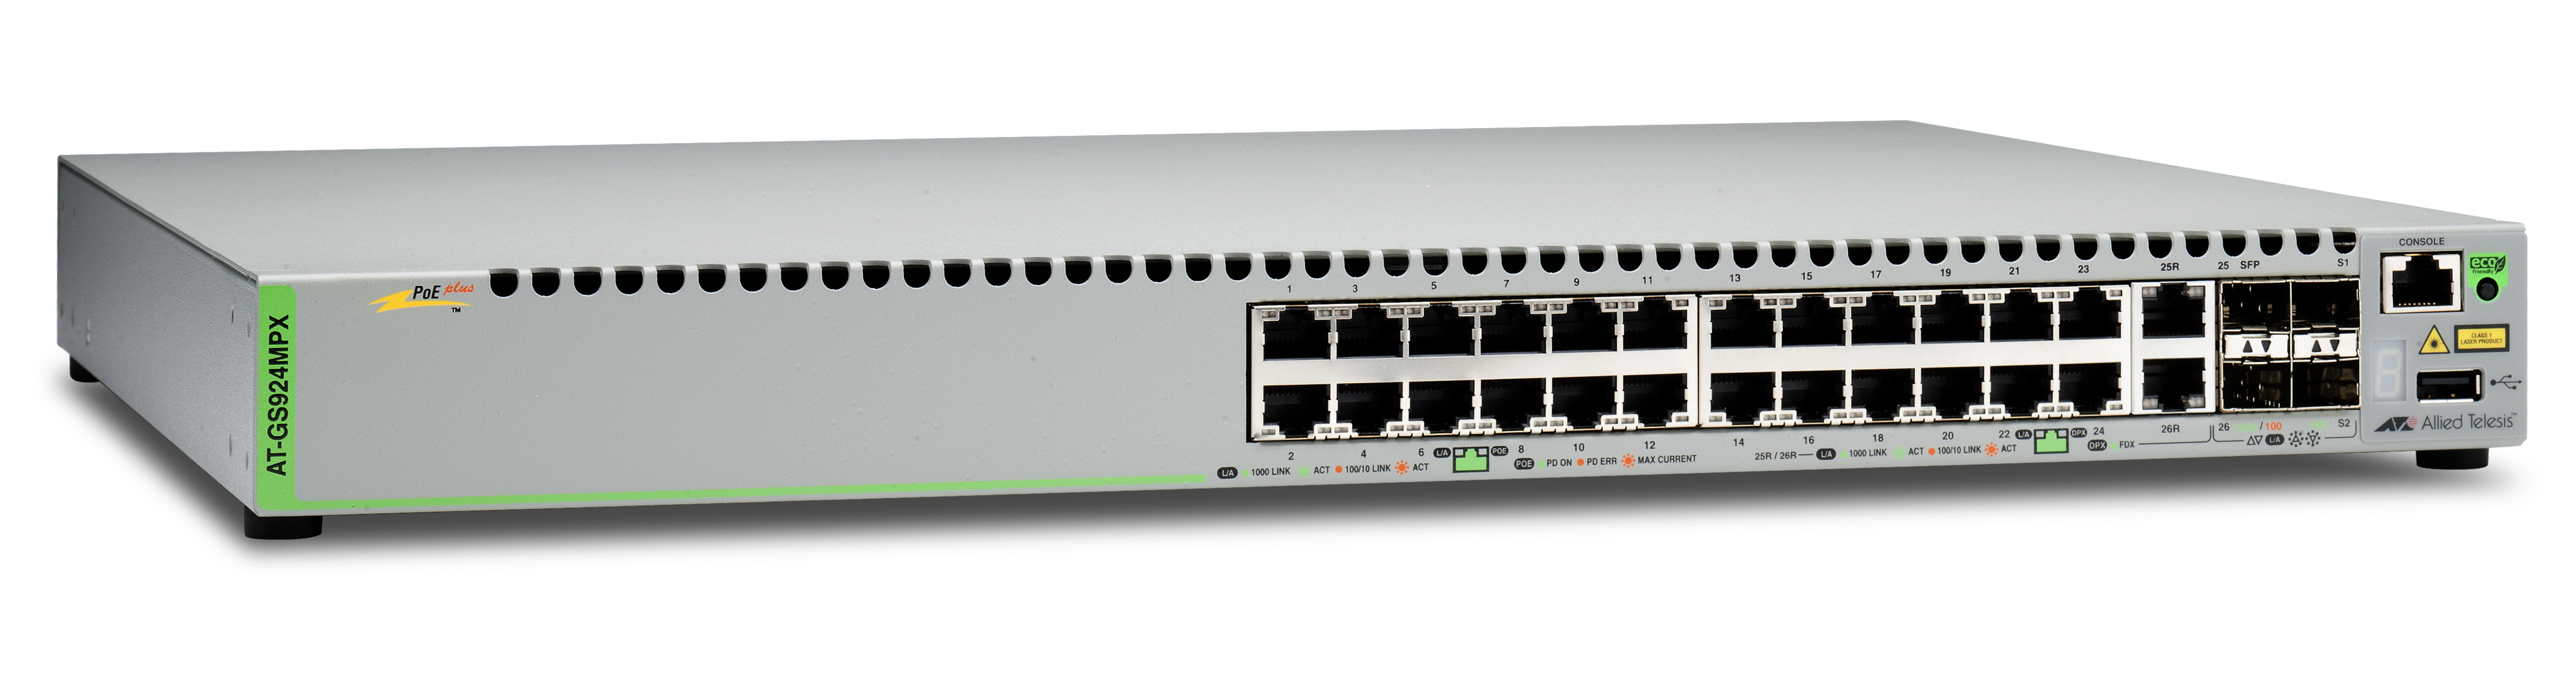 Allied Telesis CentreCOM AT-GS924MPX-50 1Gb switch